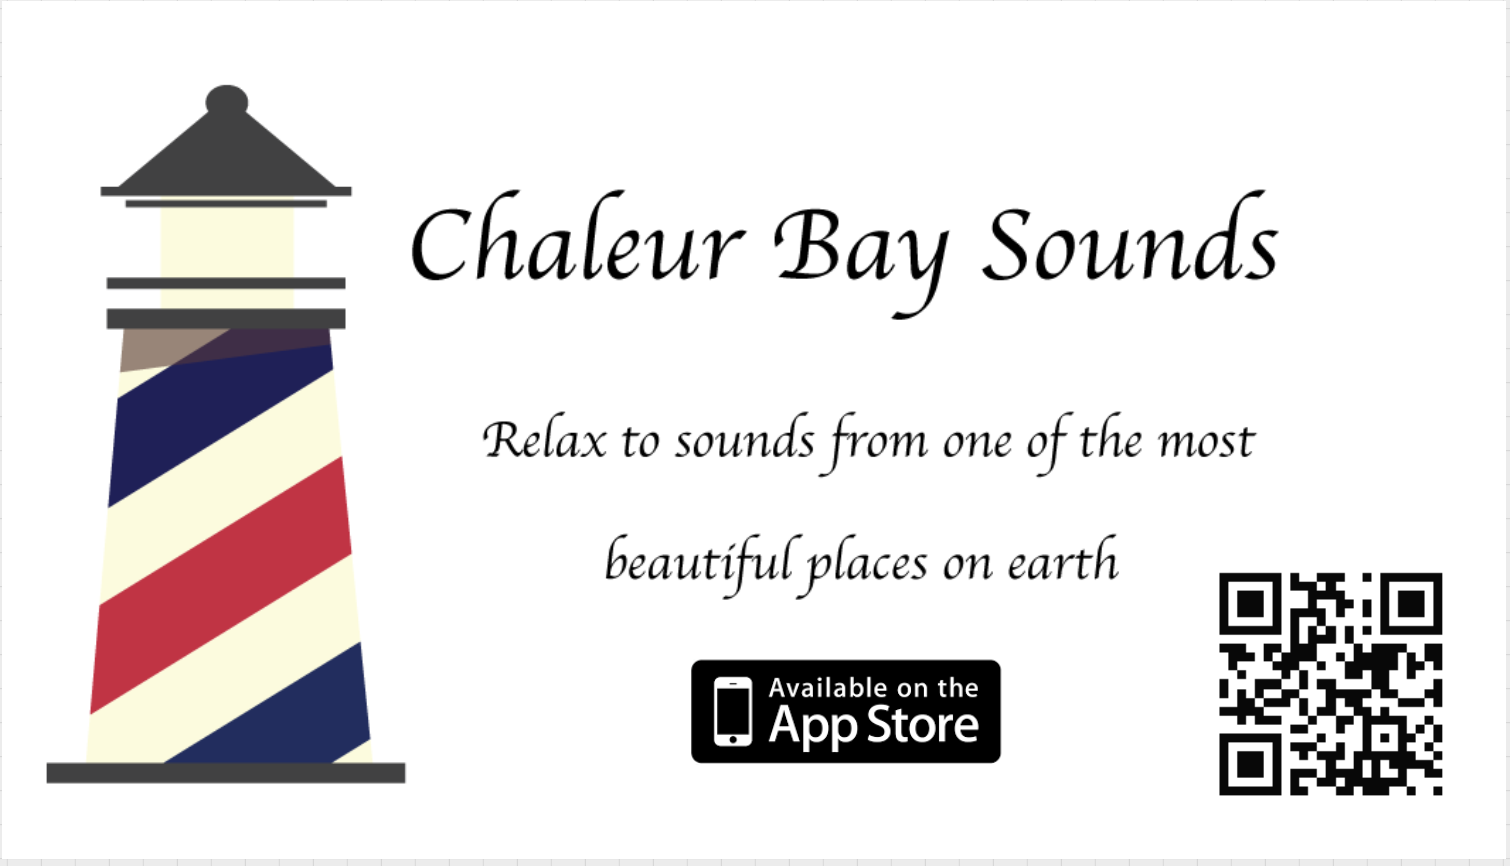 Link to Chaleaur Bay Sounds App